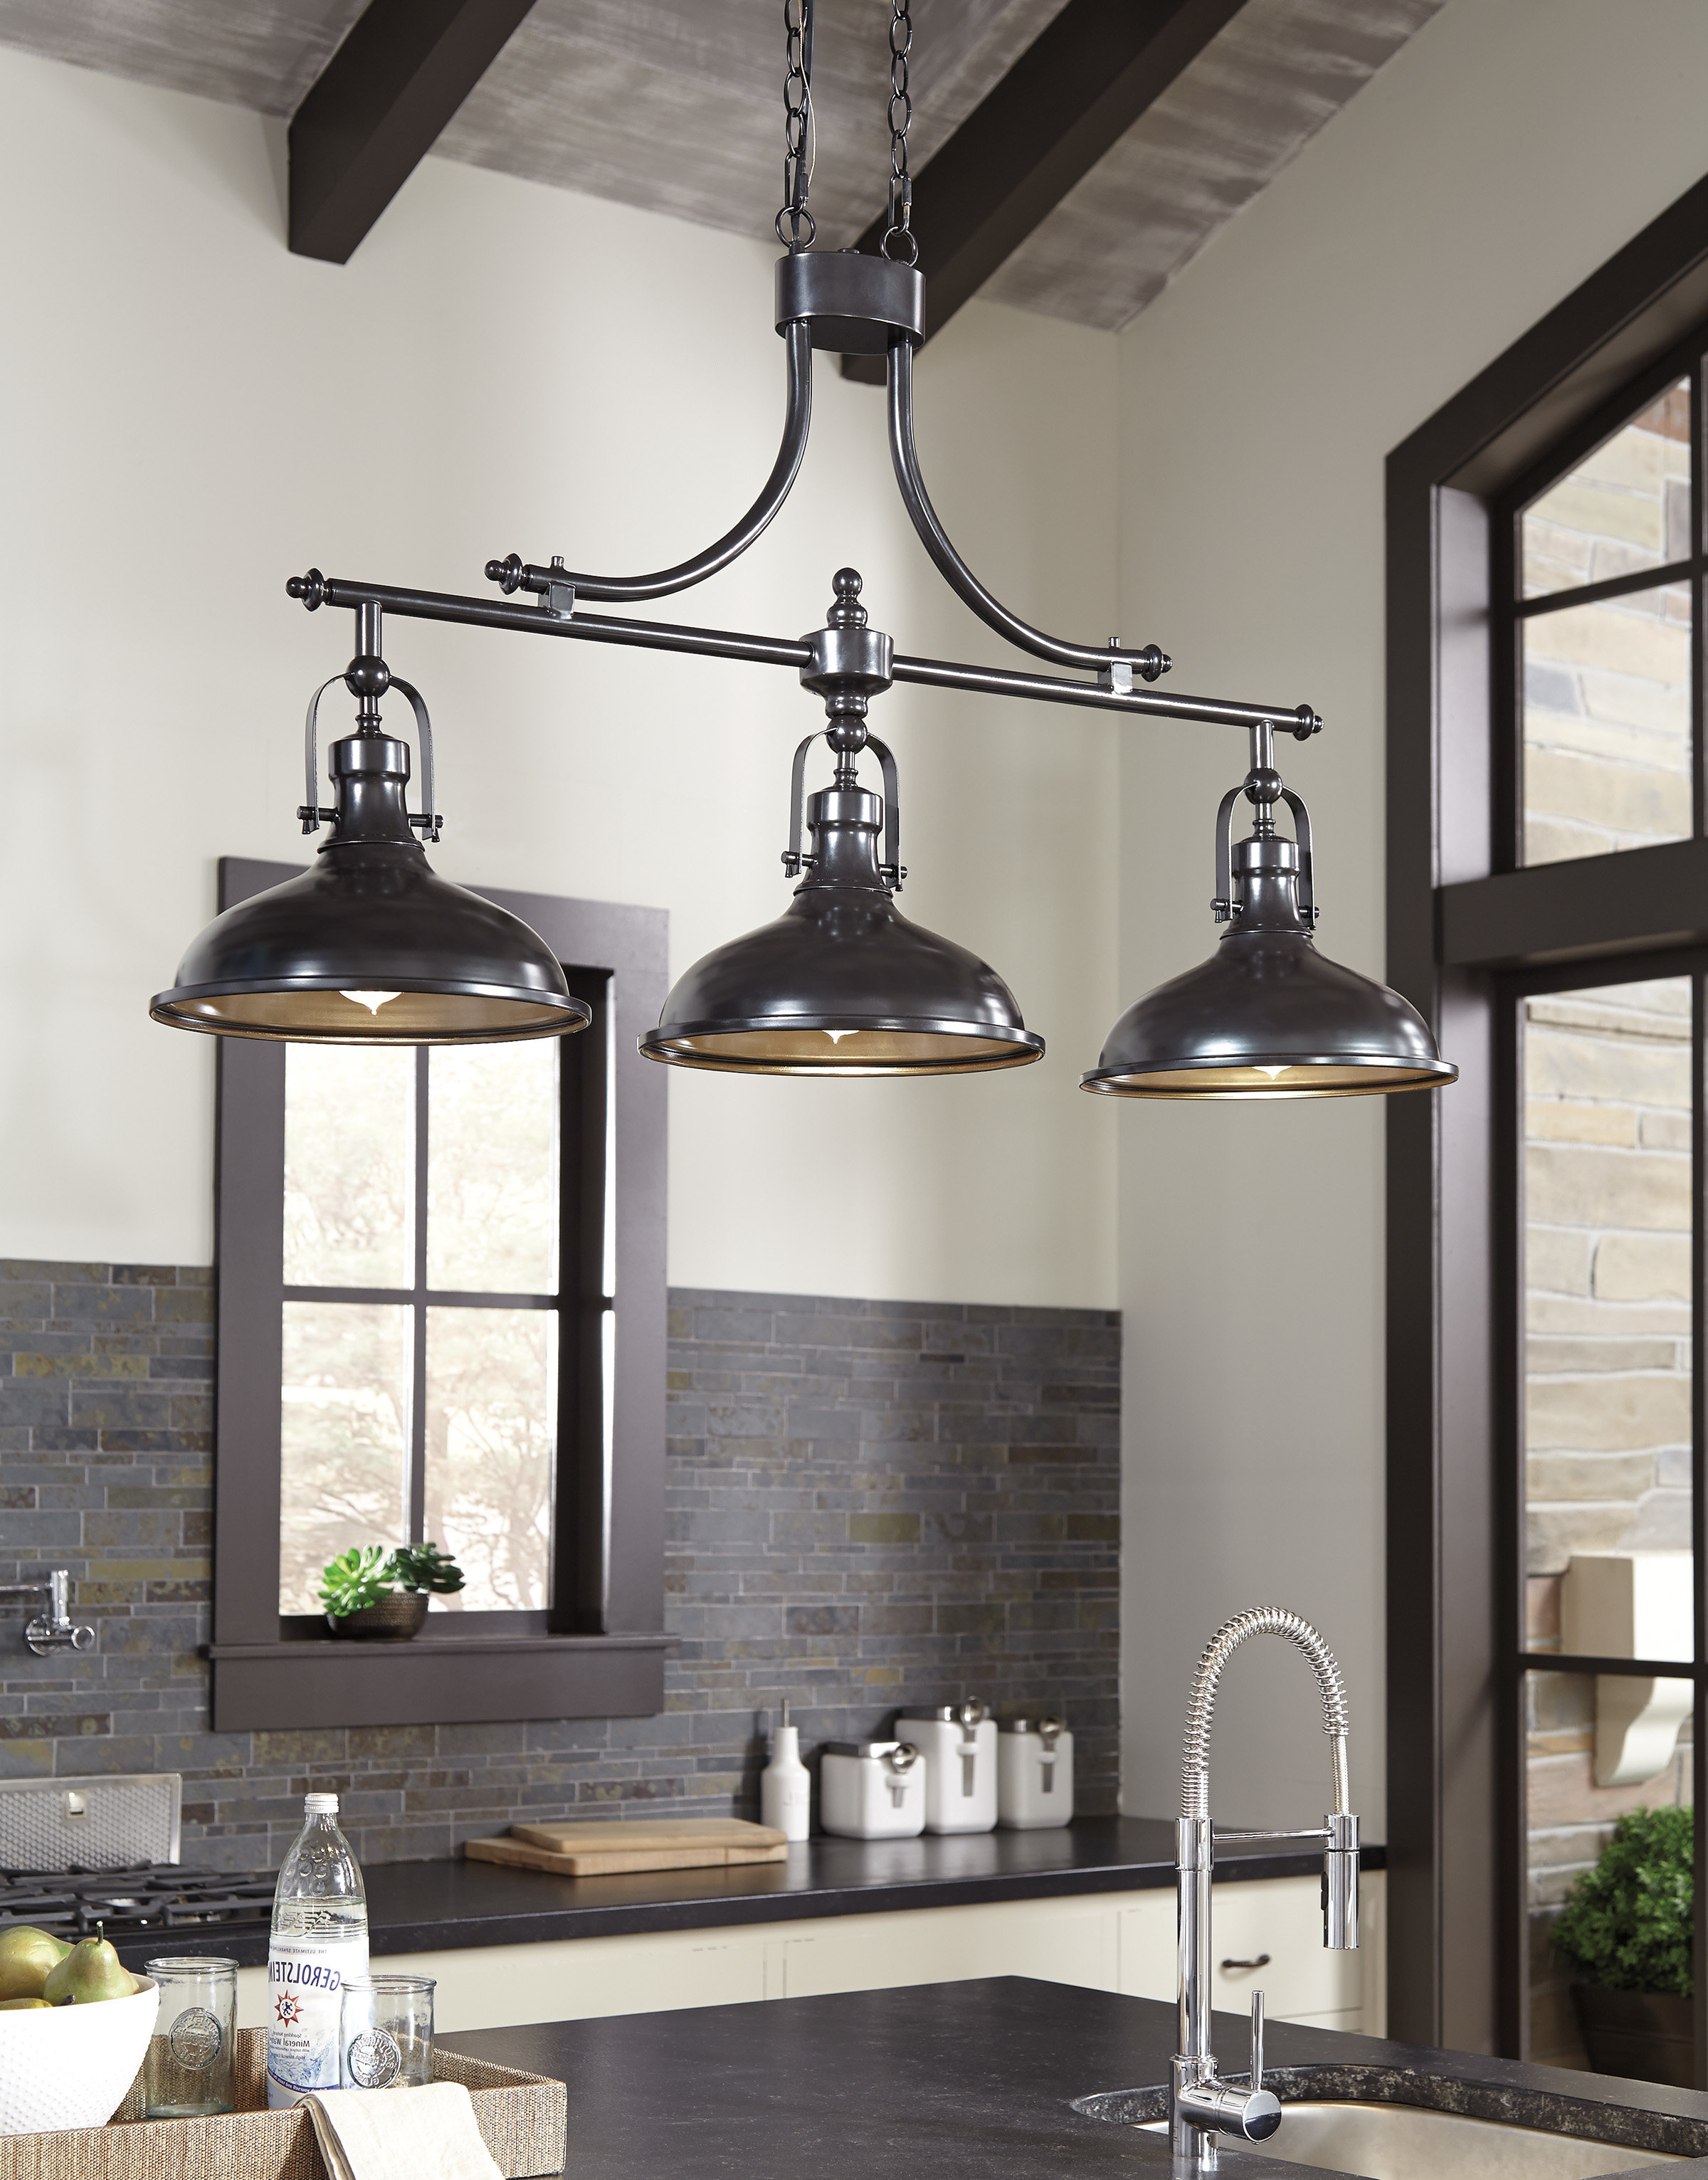 Well Liked Martinique 3 Light Kitchen Island Dome Pendant Pertaining To Martinique 3 Light Kitchen Island Dome Pendants (View 2 of 25)